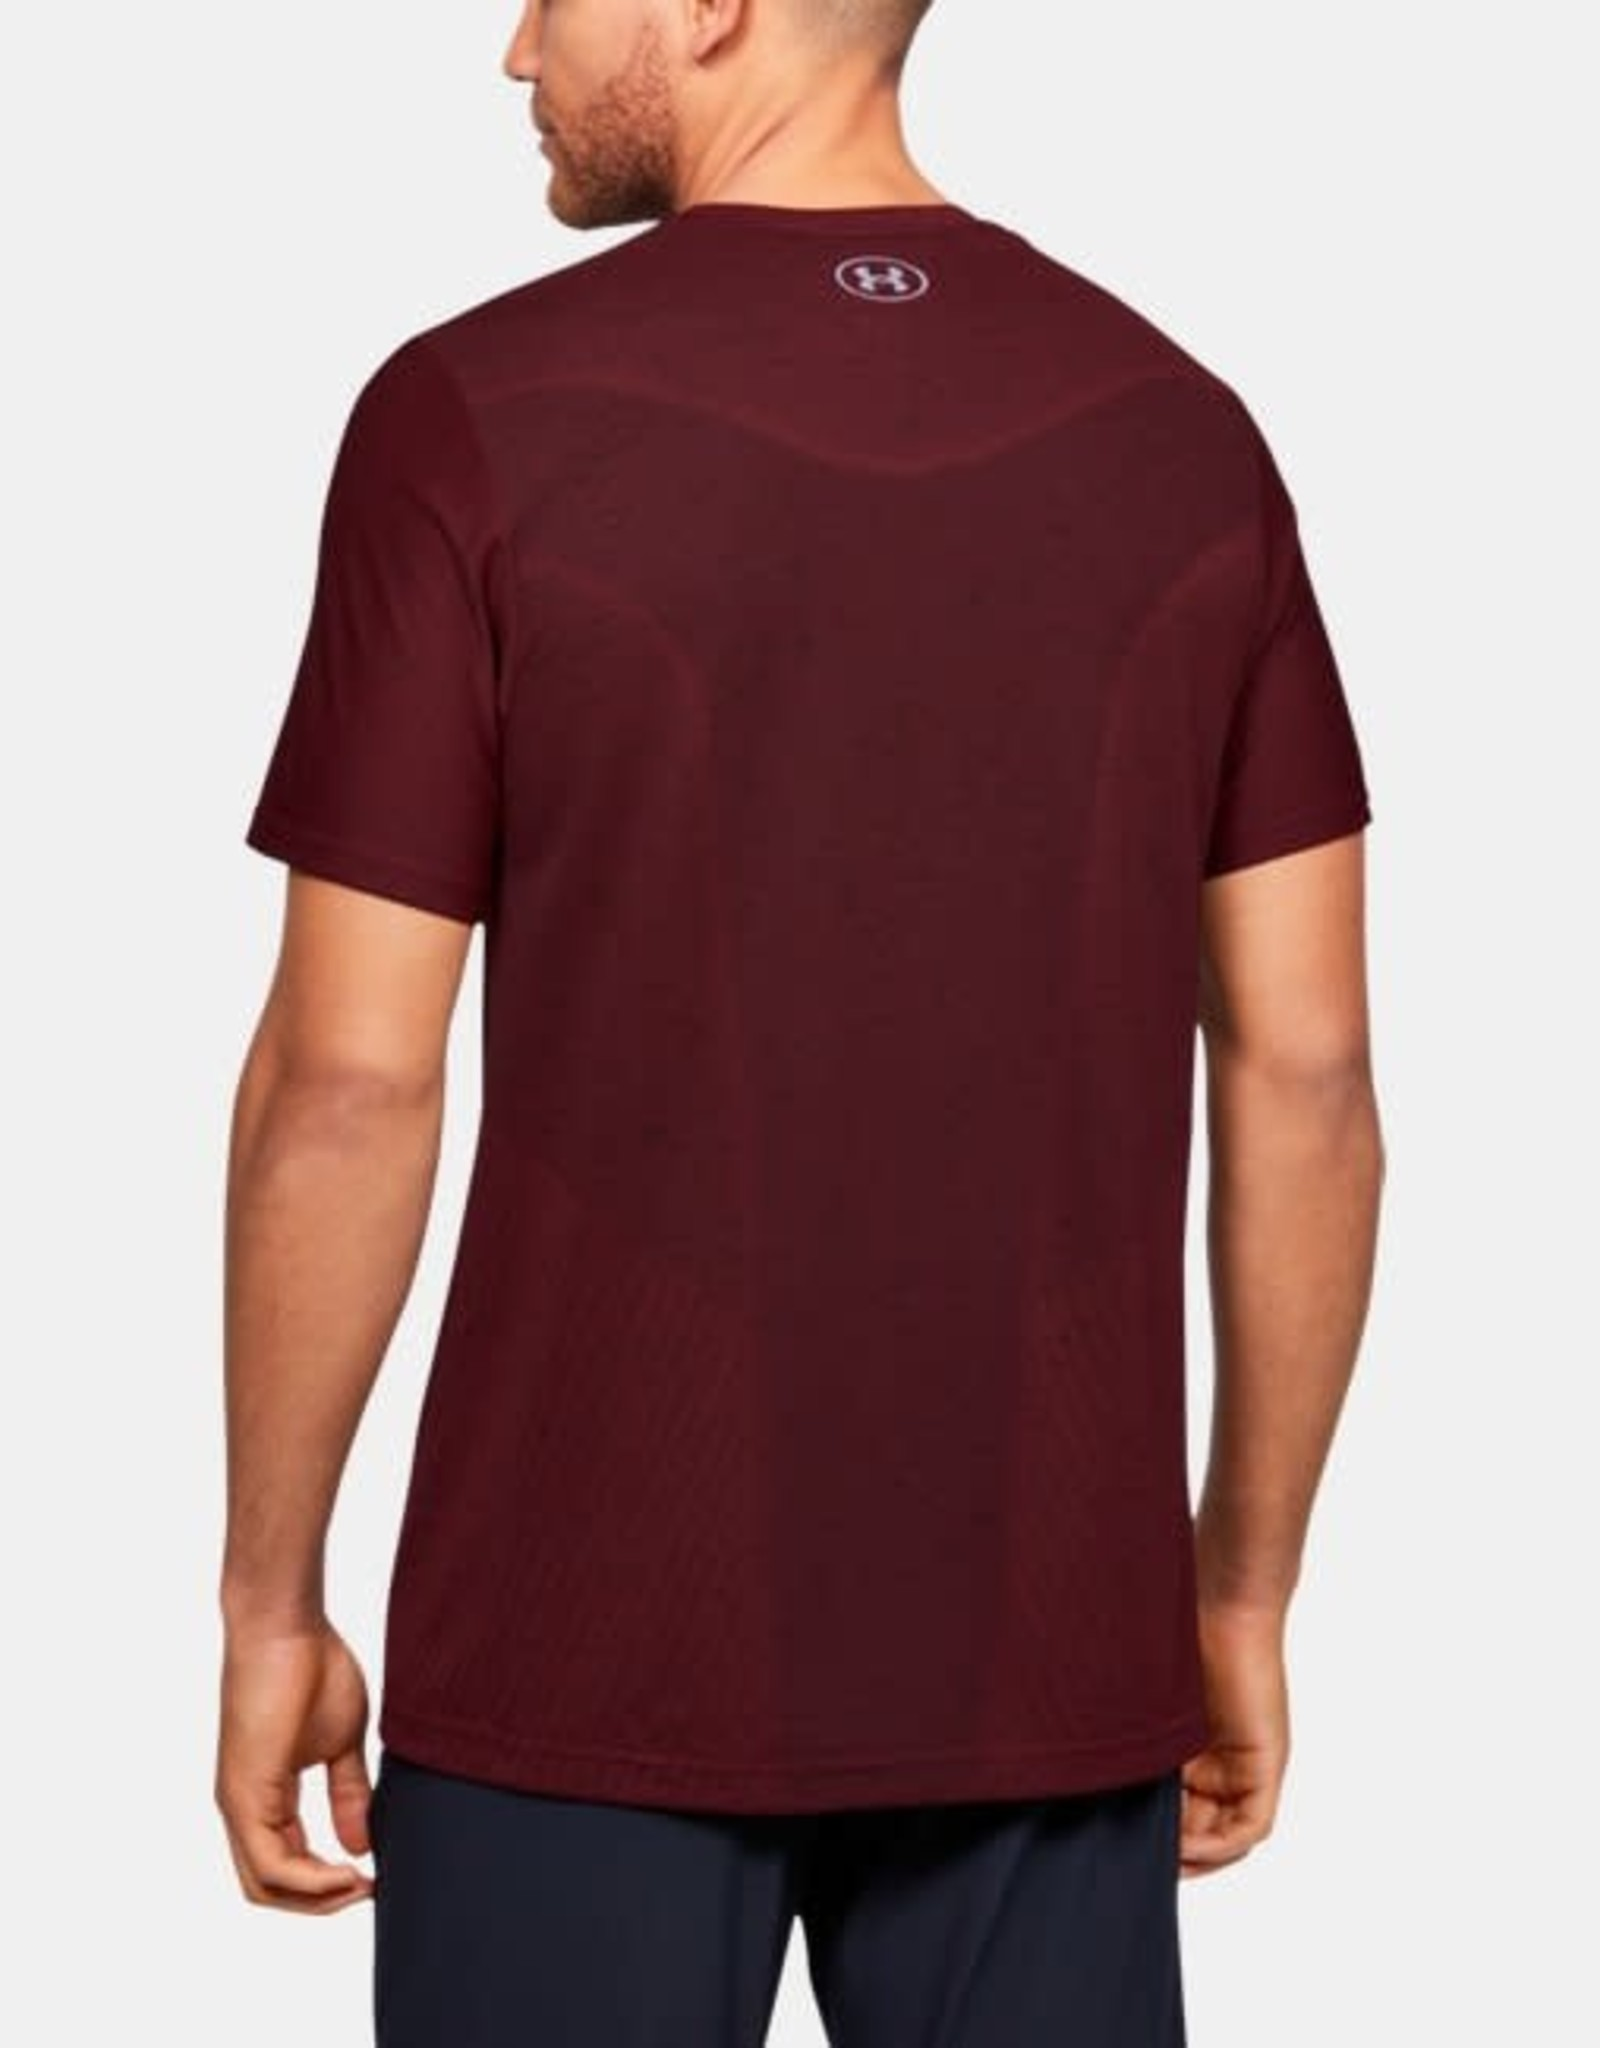 Under Armour Seamless Tee - deep red